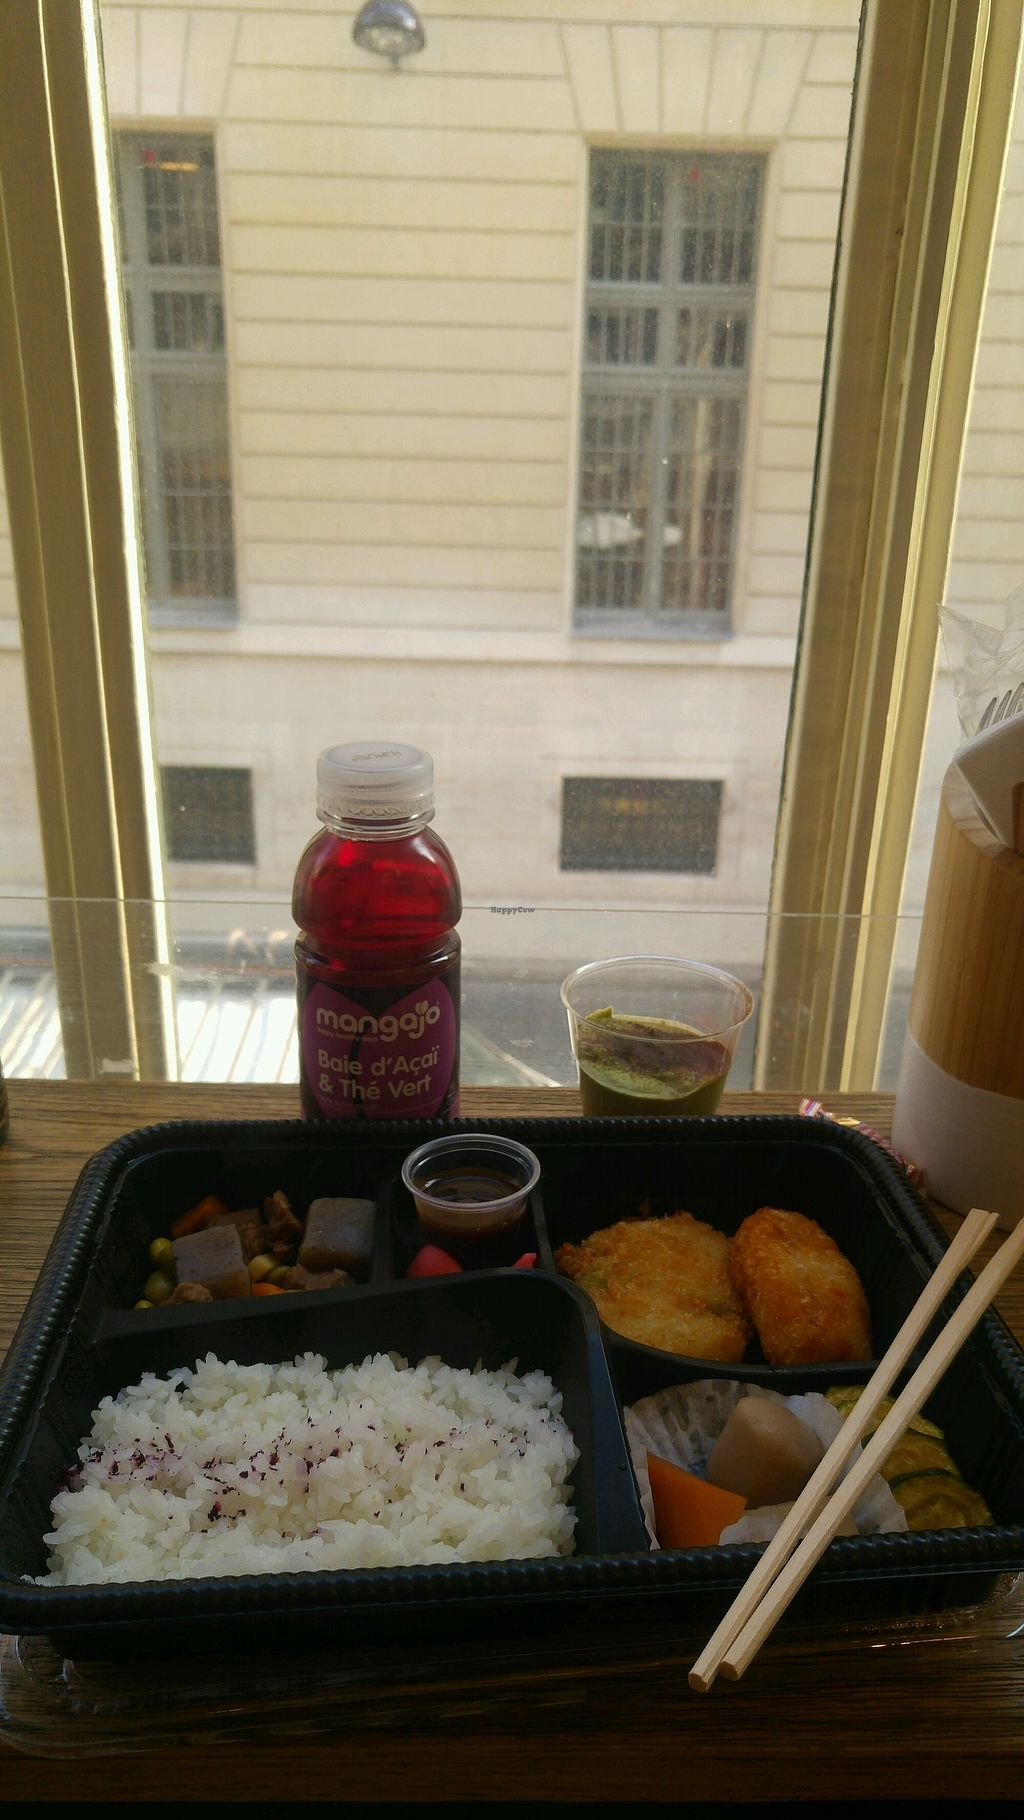 """Photo of Tofuya  by <a href=""""/members/profile/carnetsdalice"""">carnetsdalice</a> <br/>Vegan tofu croquette bento <br/> November 2, 2017  - <a href='/contact/abuse/image/96916/321116'>Report</a>"""